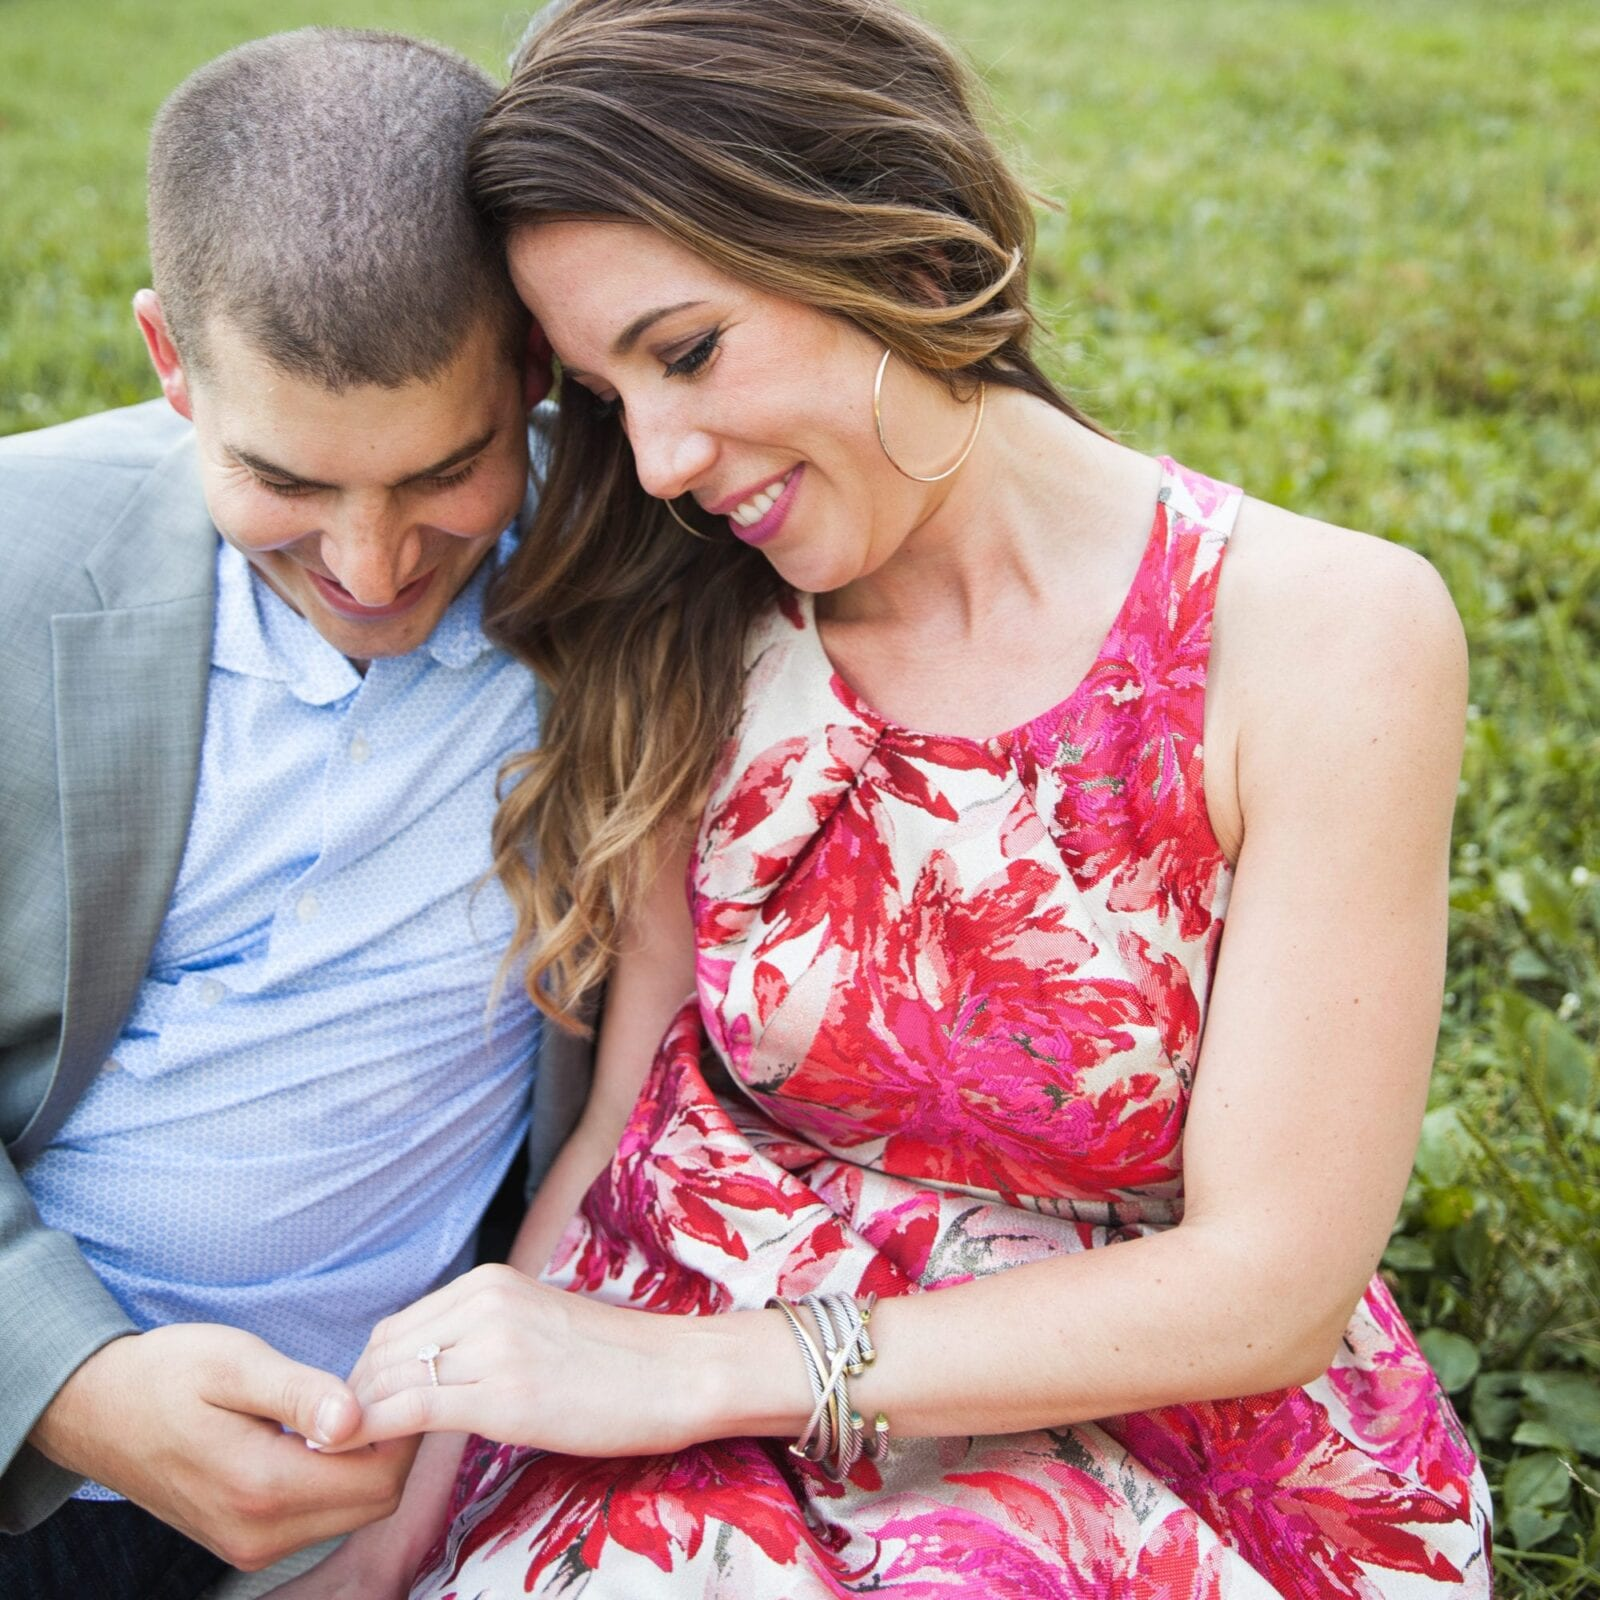 District Bliss shares proposal tips for photography by Photos from the Harty